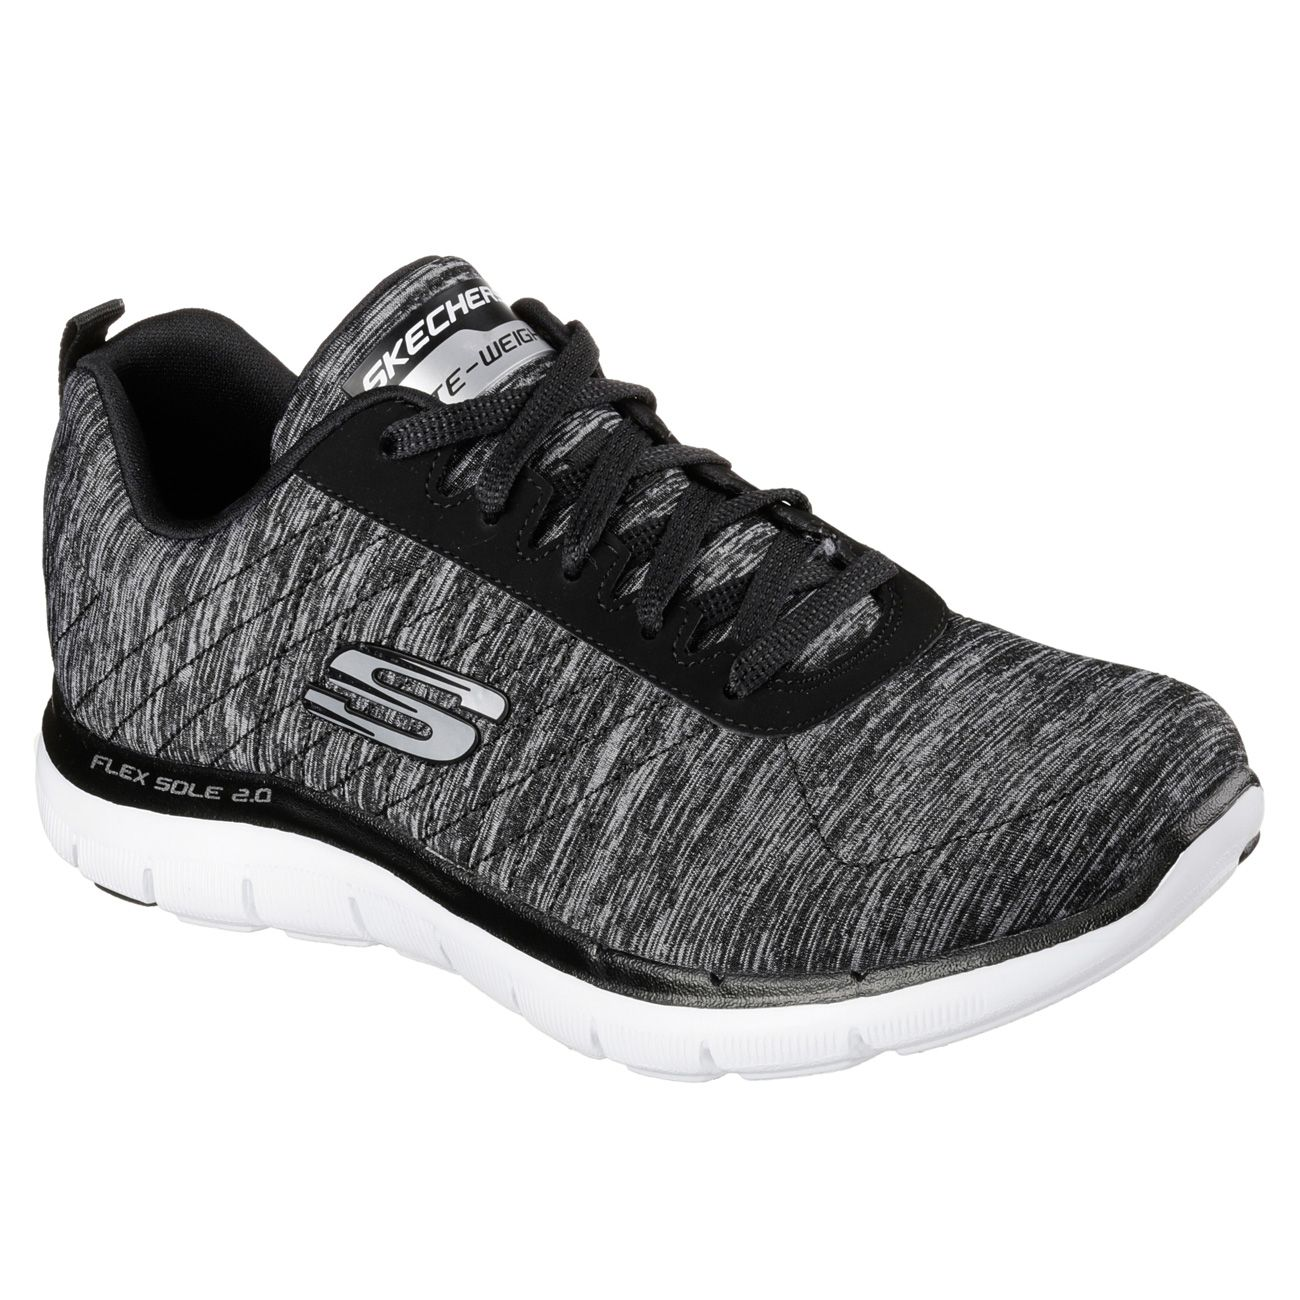 Skechers Black Shoes Womens Price